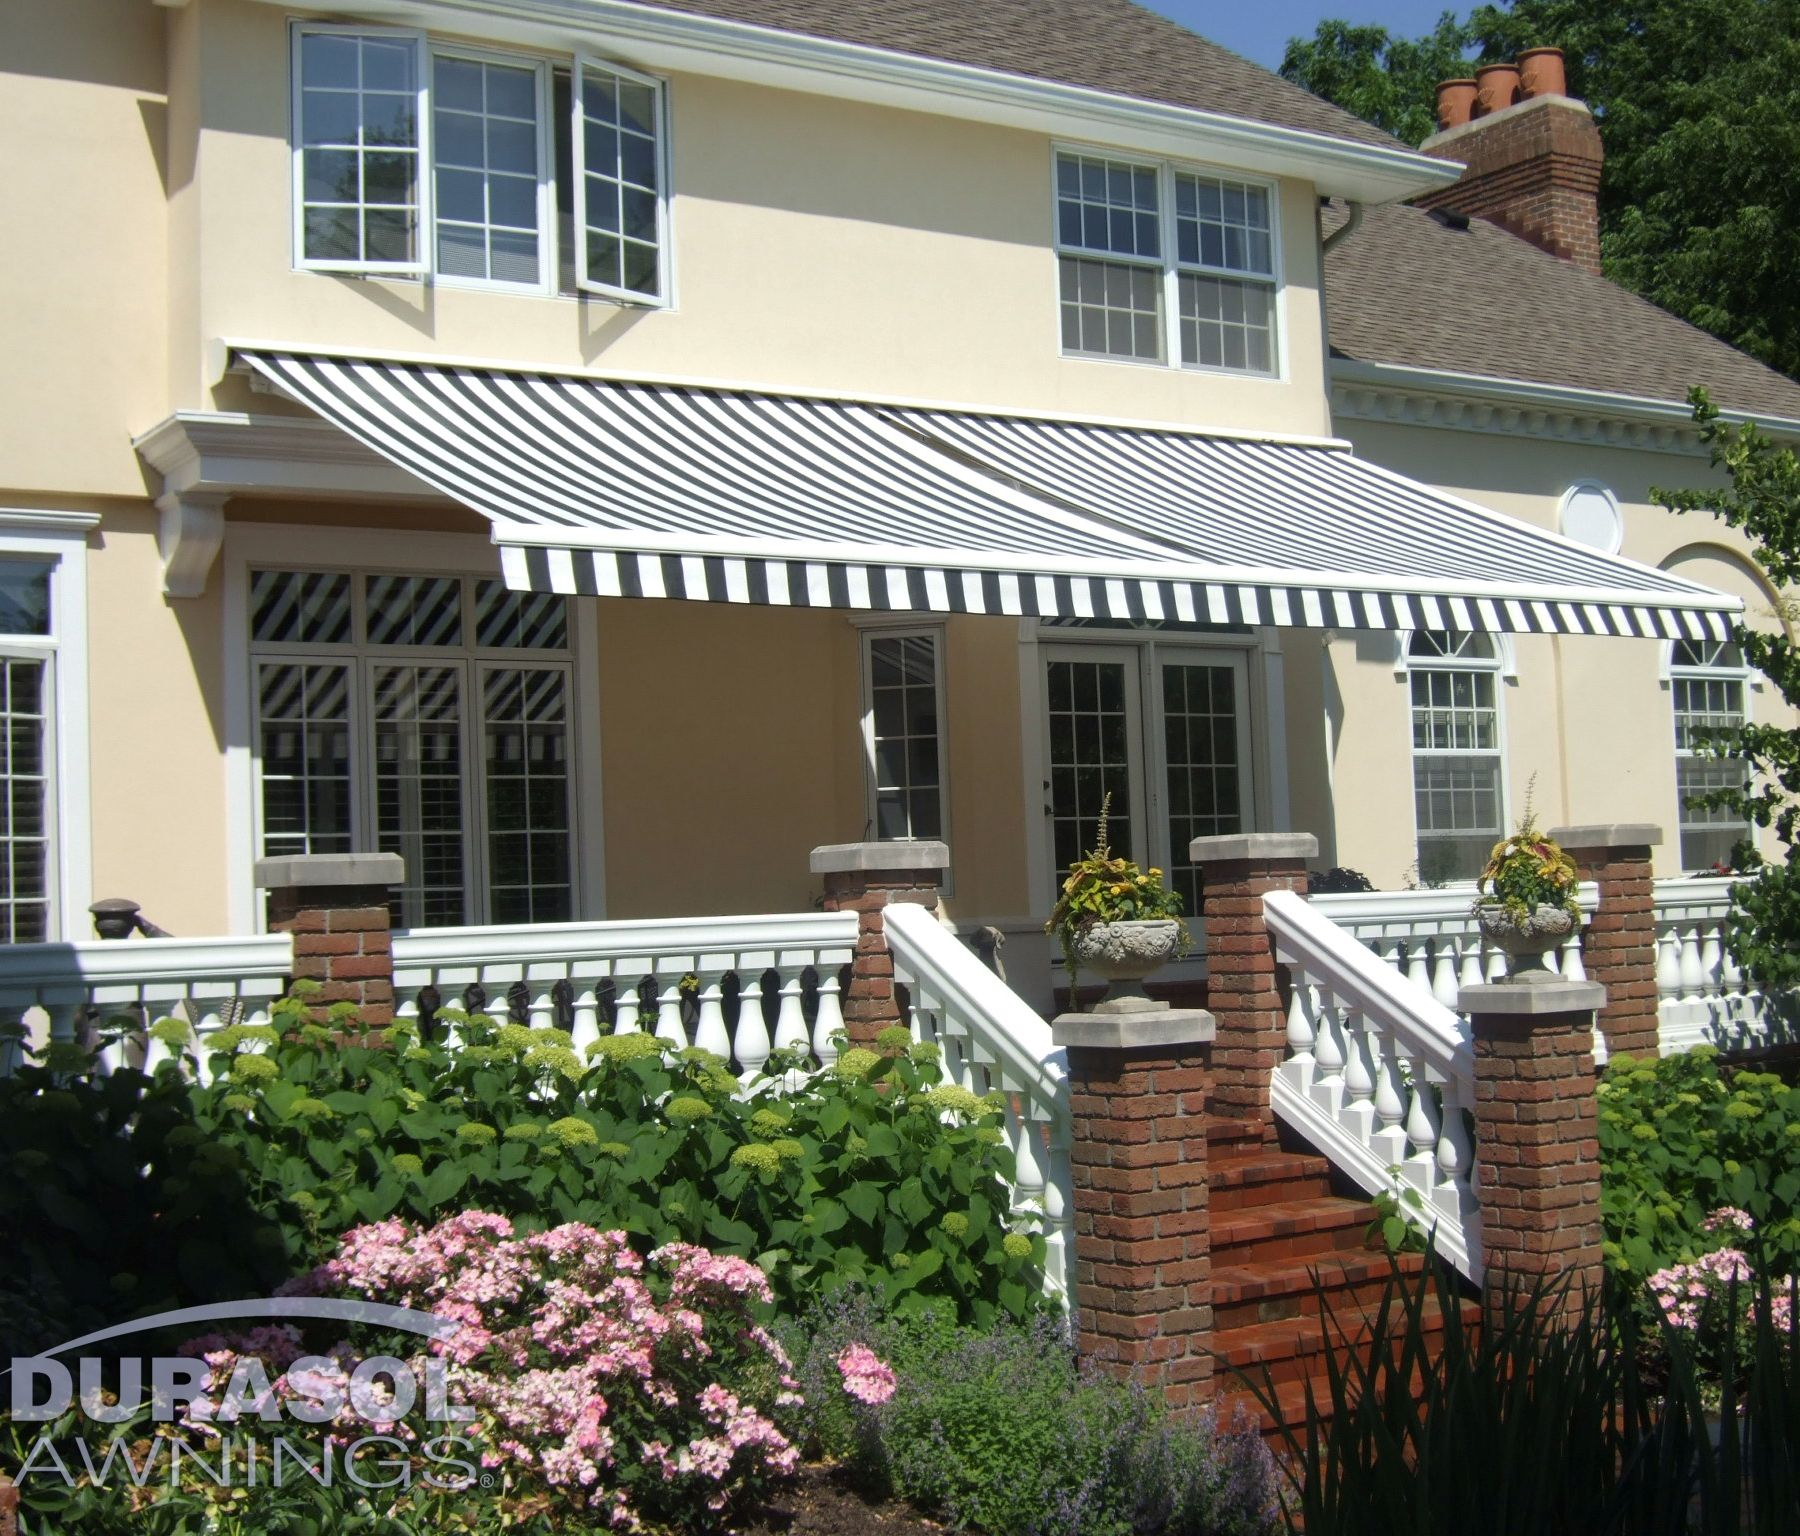 Great Durasol Awnings | Deck U0026 Patio | SunShelter Family | Elite Plus